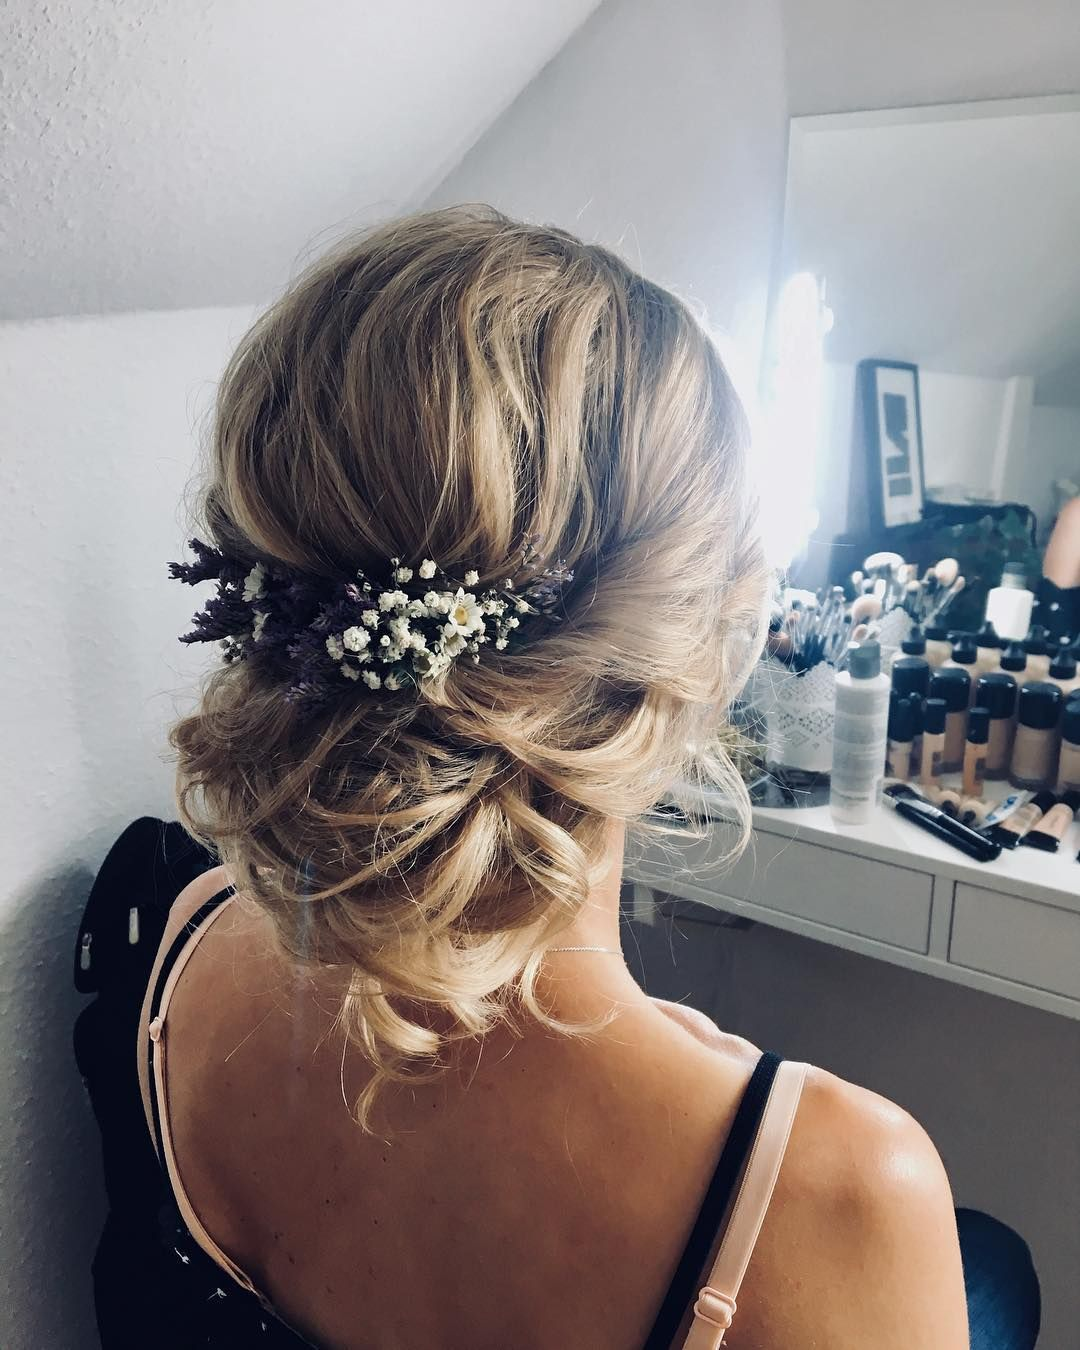 Gorgeous half up half down wedding hairstyle ideas partial updo